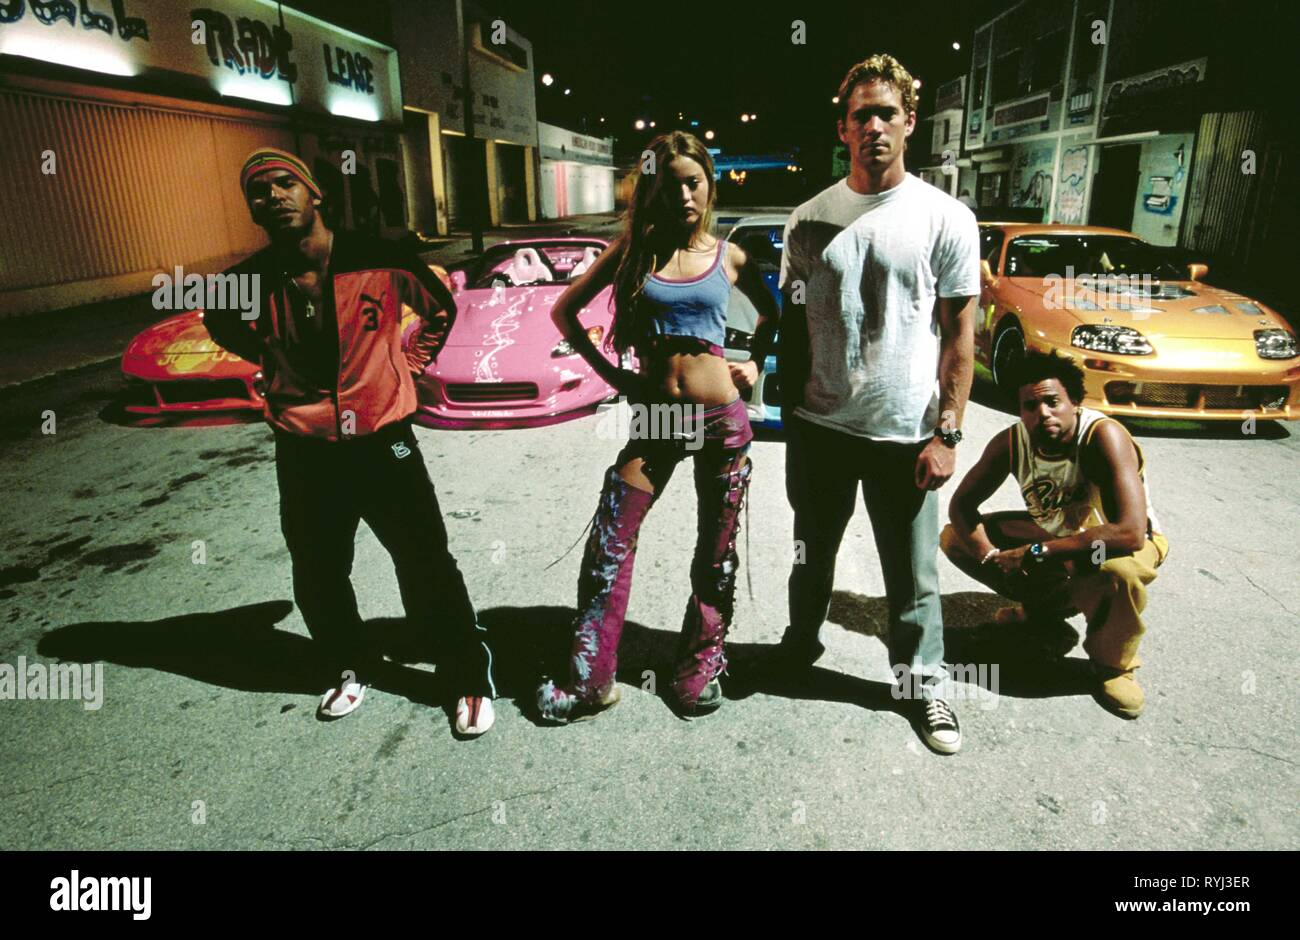 AMAURY NOLASCO, DEVON AOKI, PAUL WALKER, MICHAEL EALY, 2 FAST 2 FURIOUS, 2003 - Stock Image